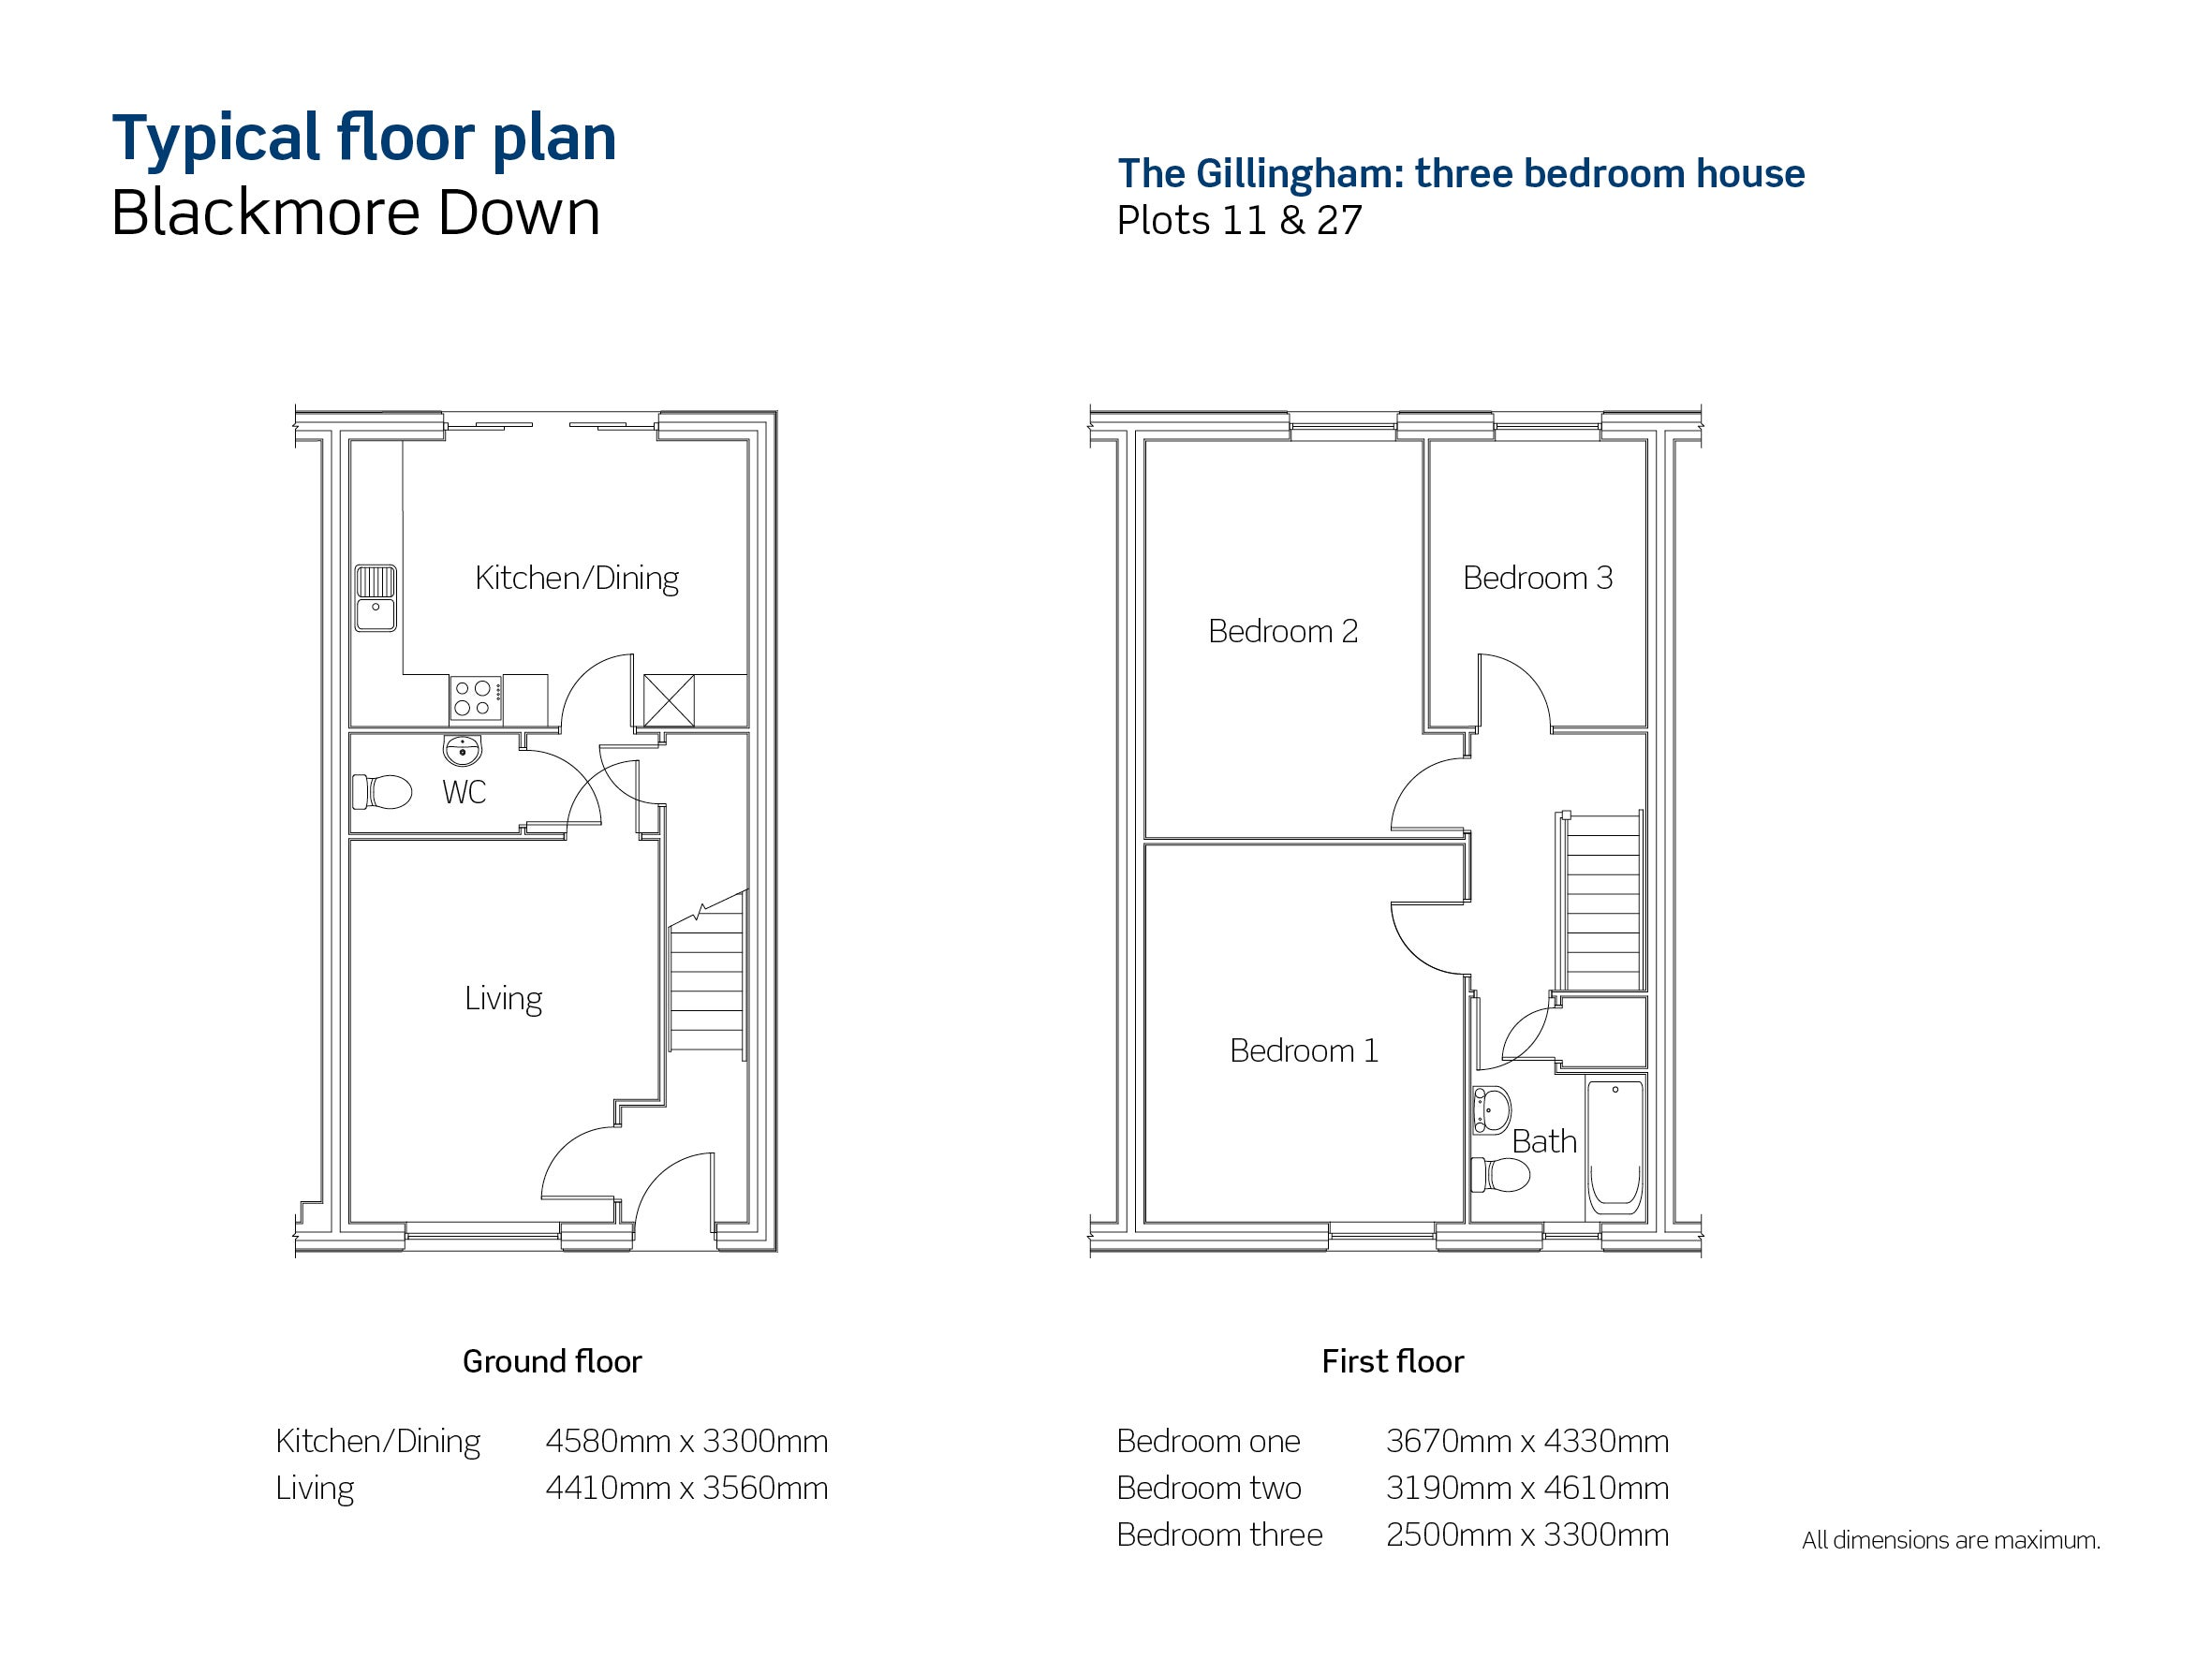 Drawing of Blackmore Down The Gillingham floor plan